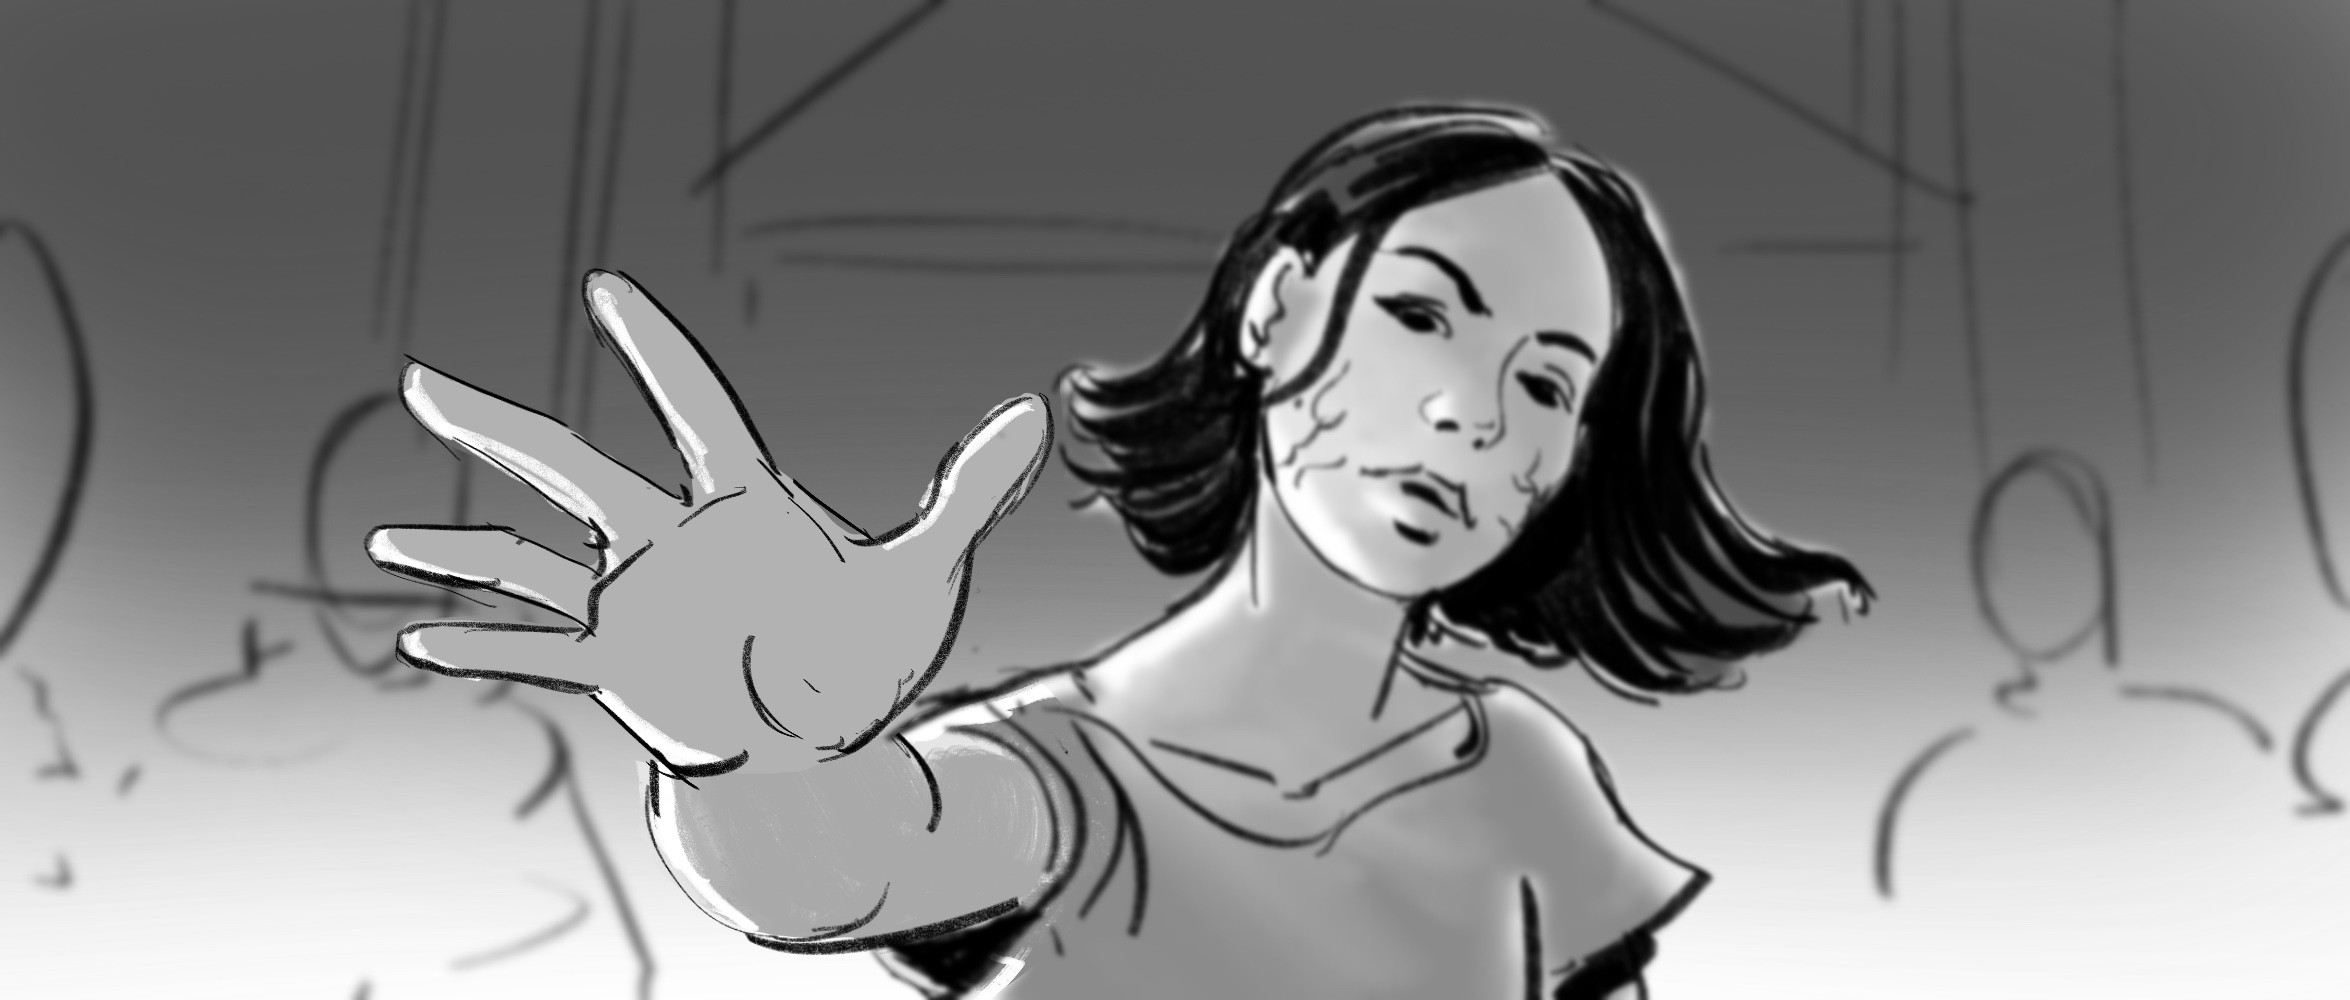 Lena_Boundaries_Storyboard_05b_v02.jpg